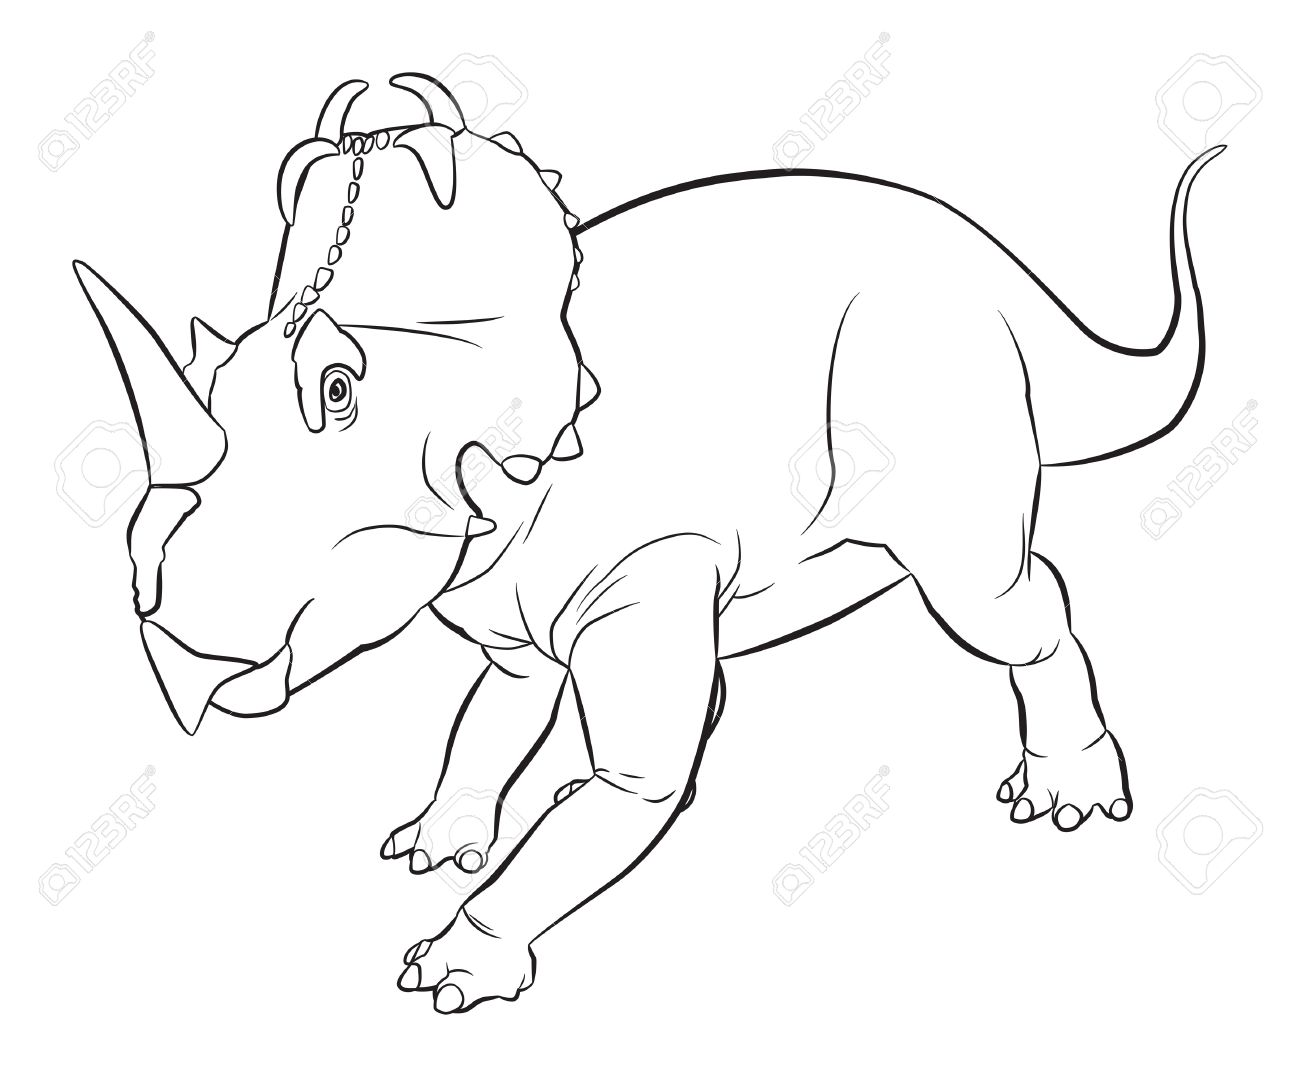 The Centrosaurus Dinosaur Lived During The Late Cretaceous Period.